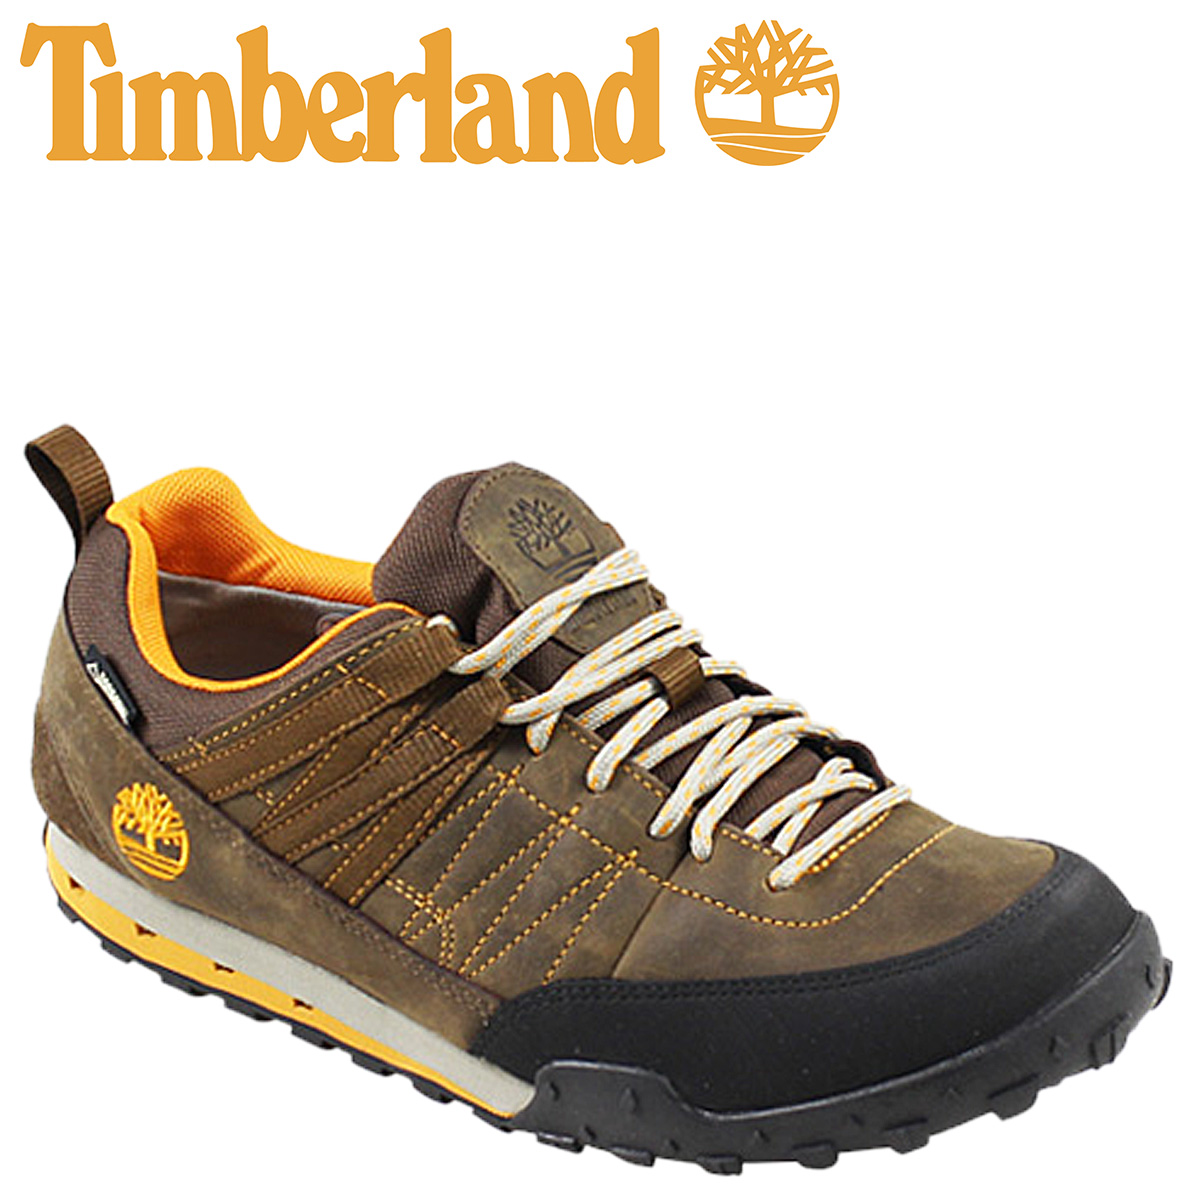 3e4e7318ca9fd Timberland Timberland shoes sneakers GREELEY APPROACH LOW LEATHER GORE-TEX  5,740A men